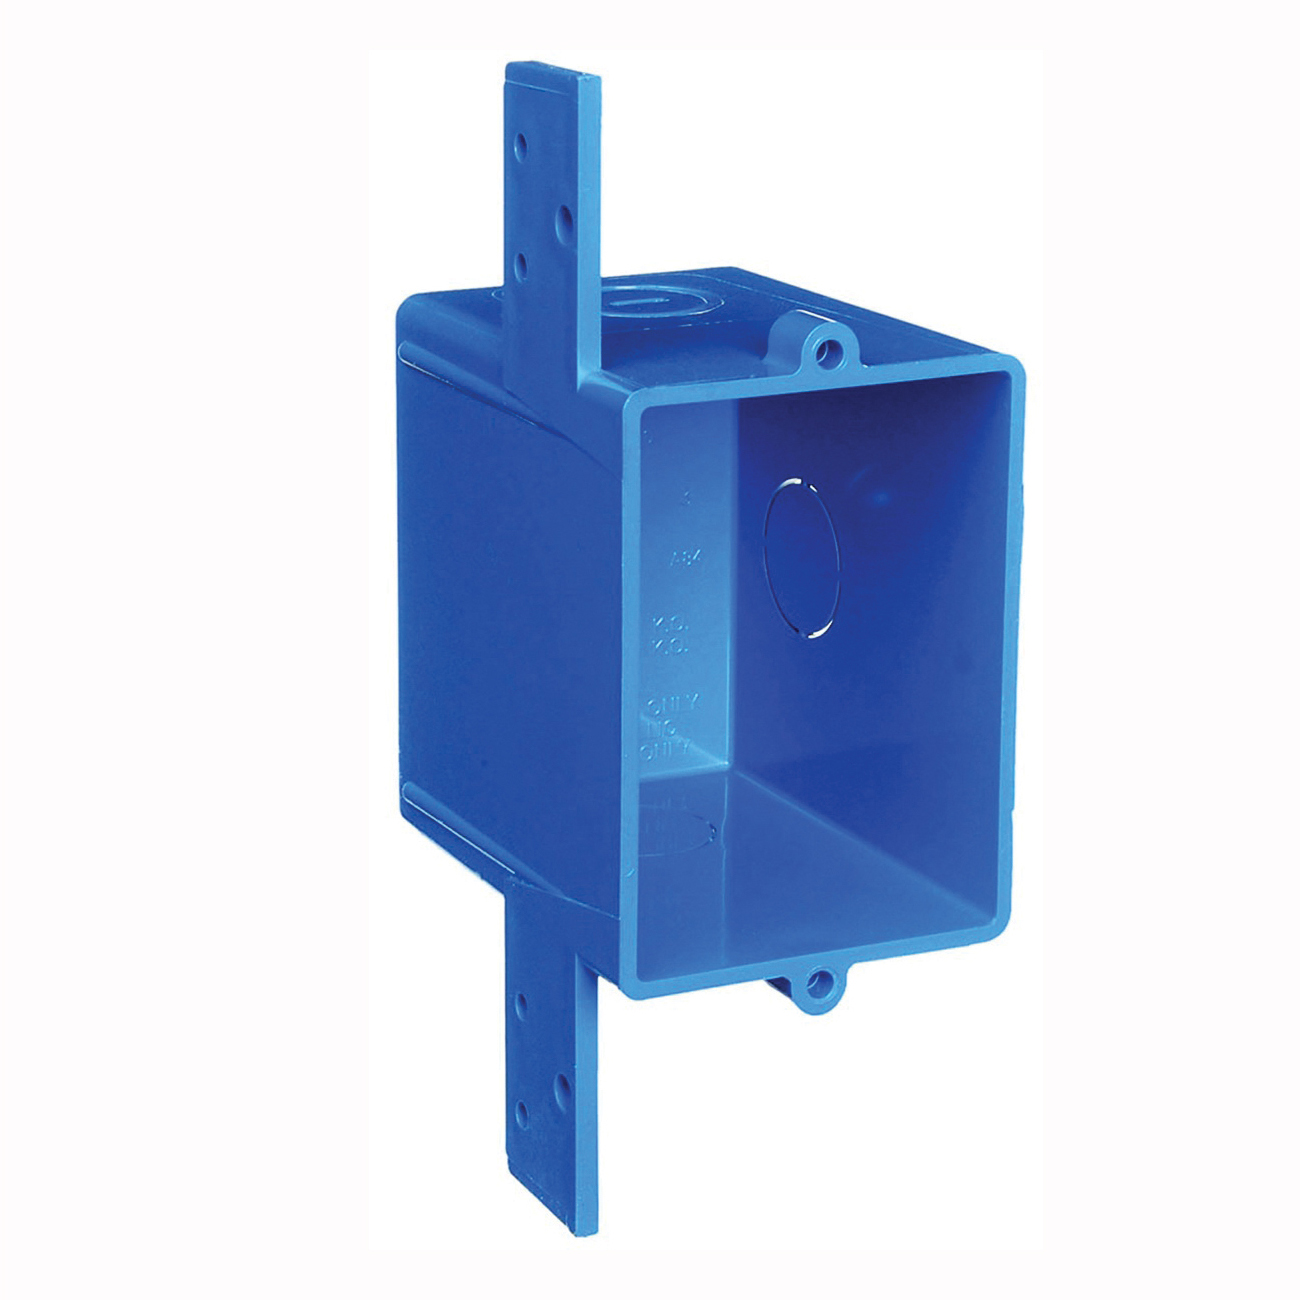 Picture of Carlon A58381D-CAR Outlet Box, 1-Gang, 3-Knockout, 1/2 in Knockout, PVC, Blue, Bracket Mounting